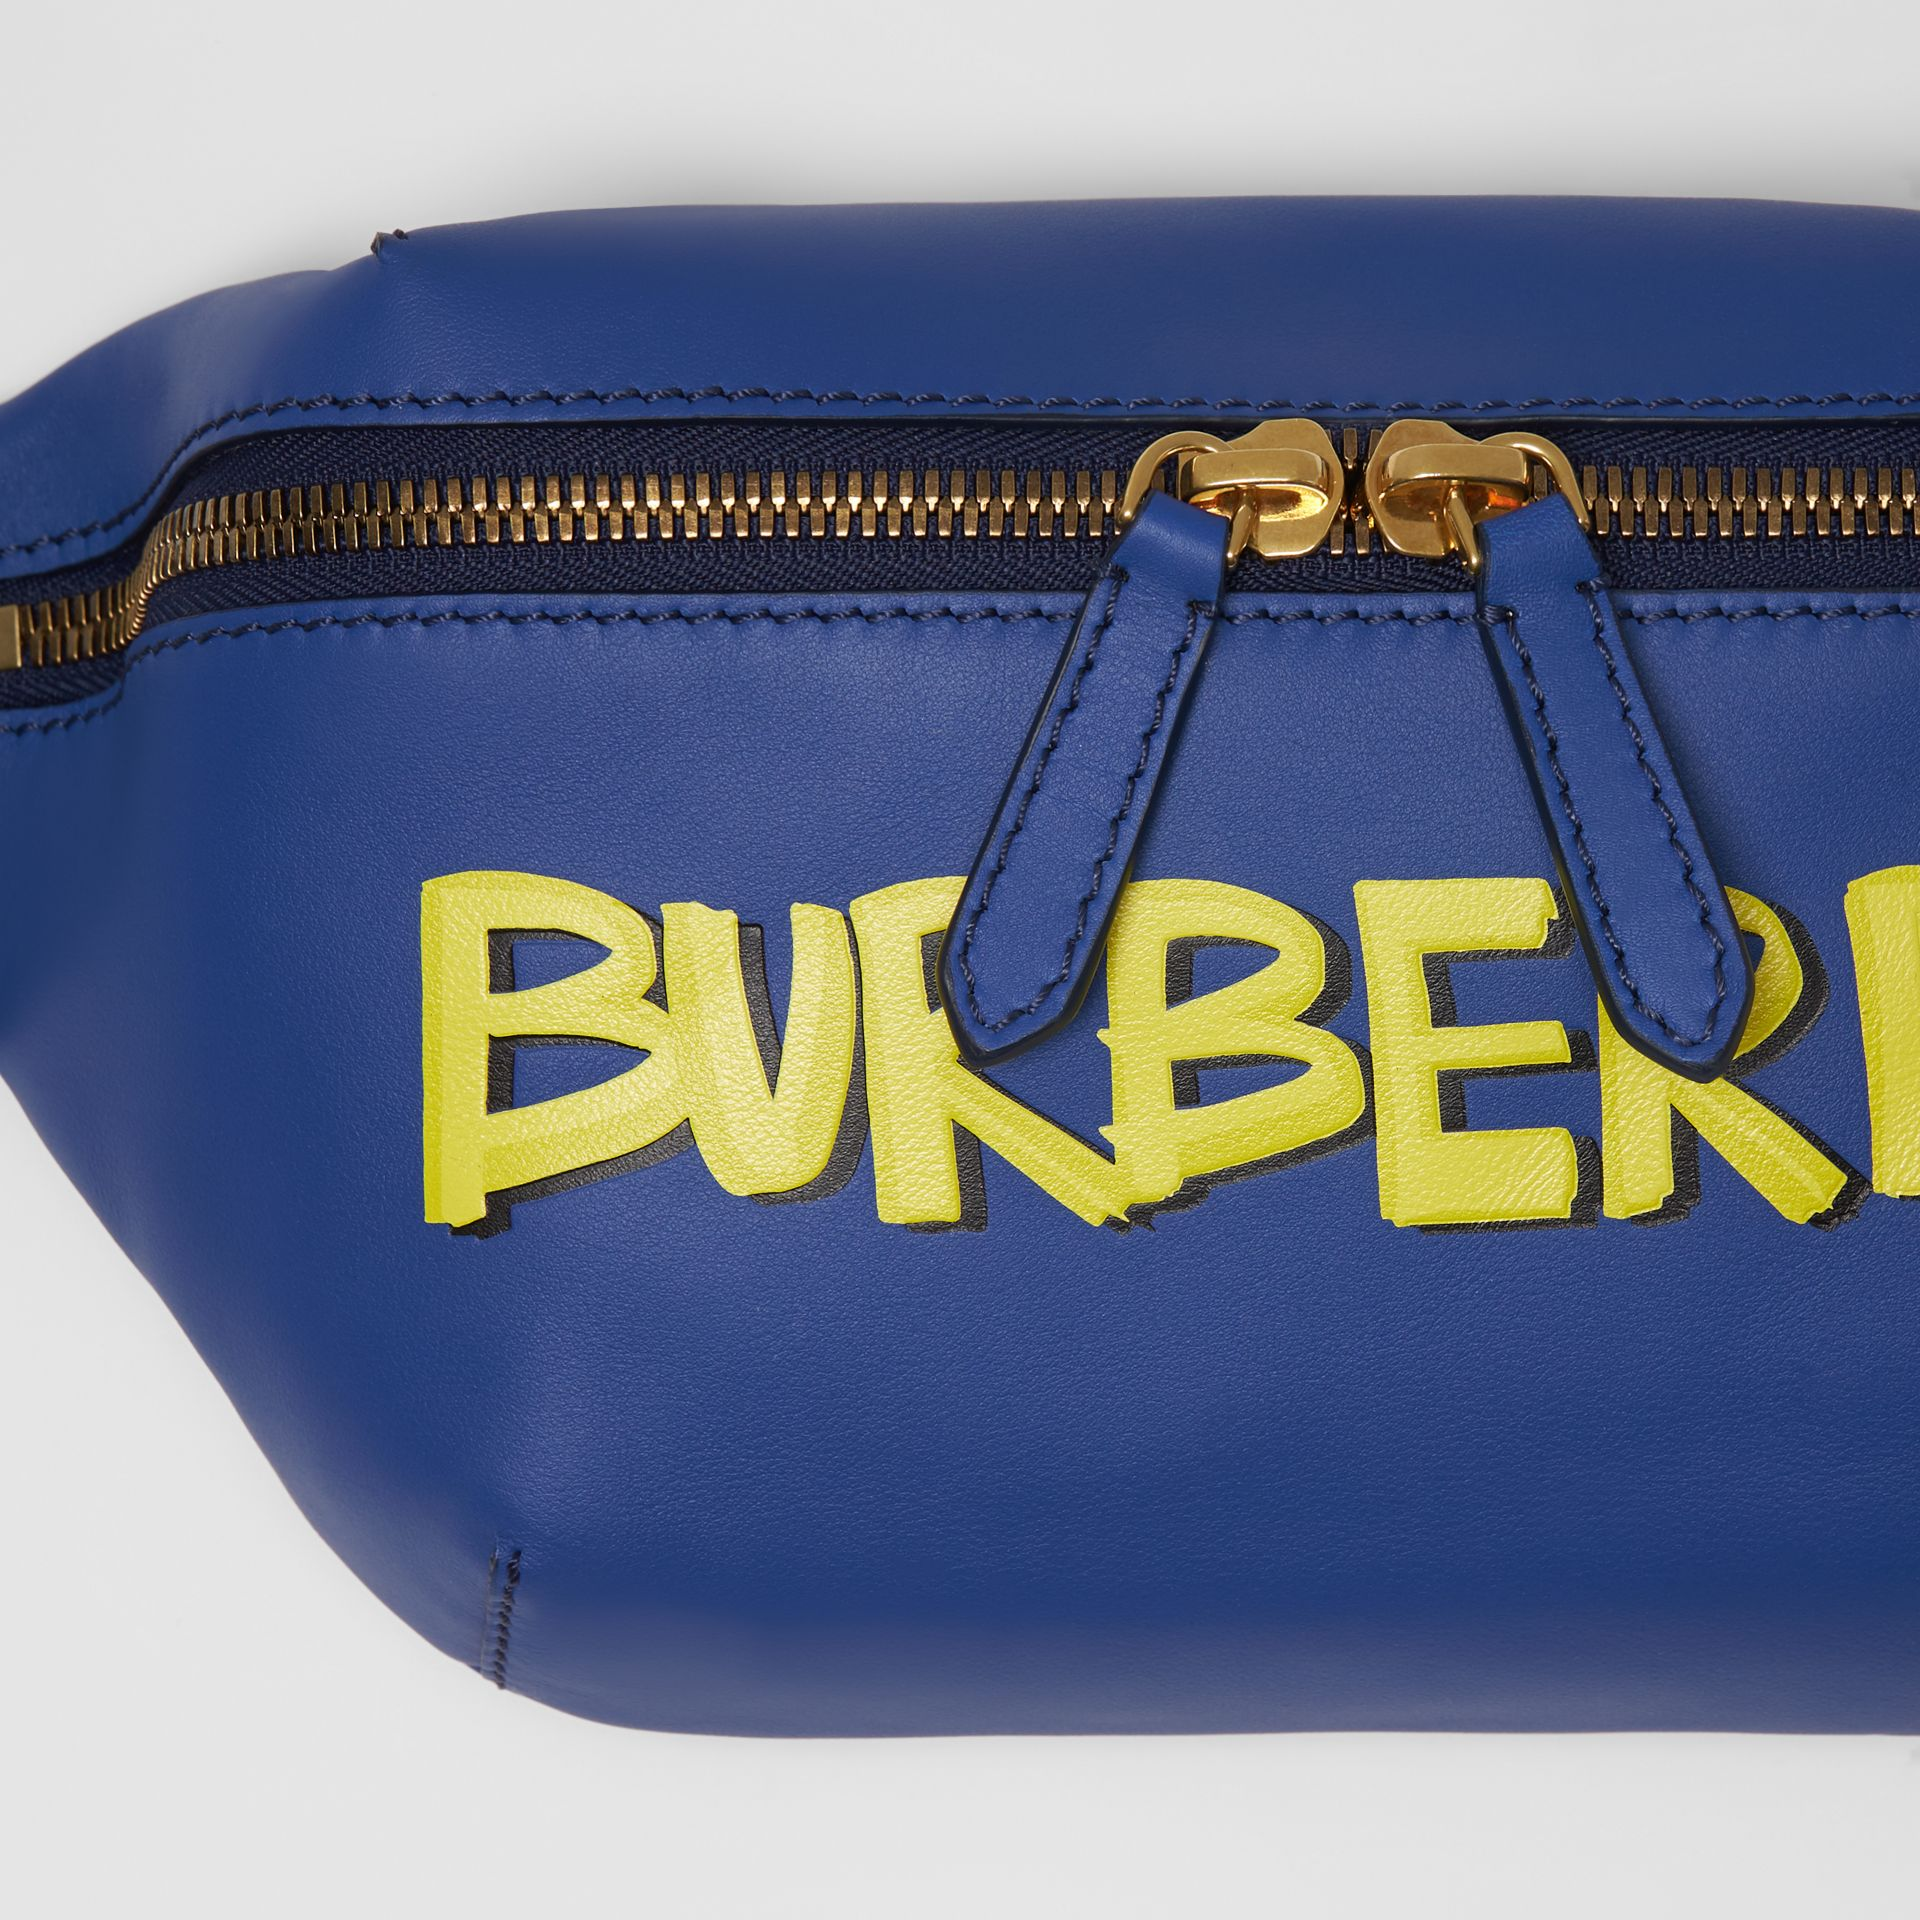 Sac banane moyen en cuir à imprimé graffiti (Bleu Denim) | Burberry - photo de la galerie 1